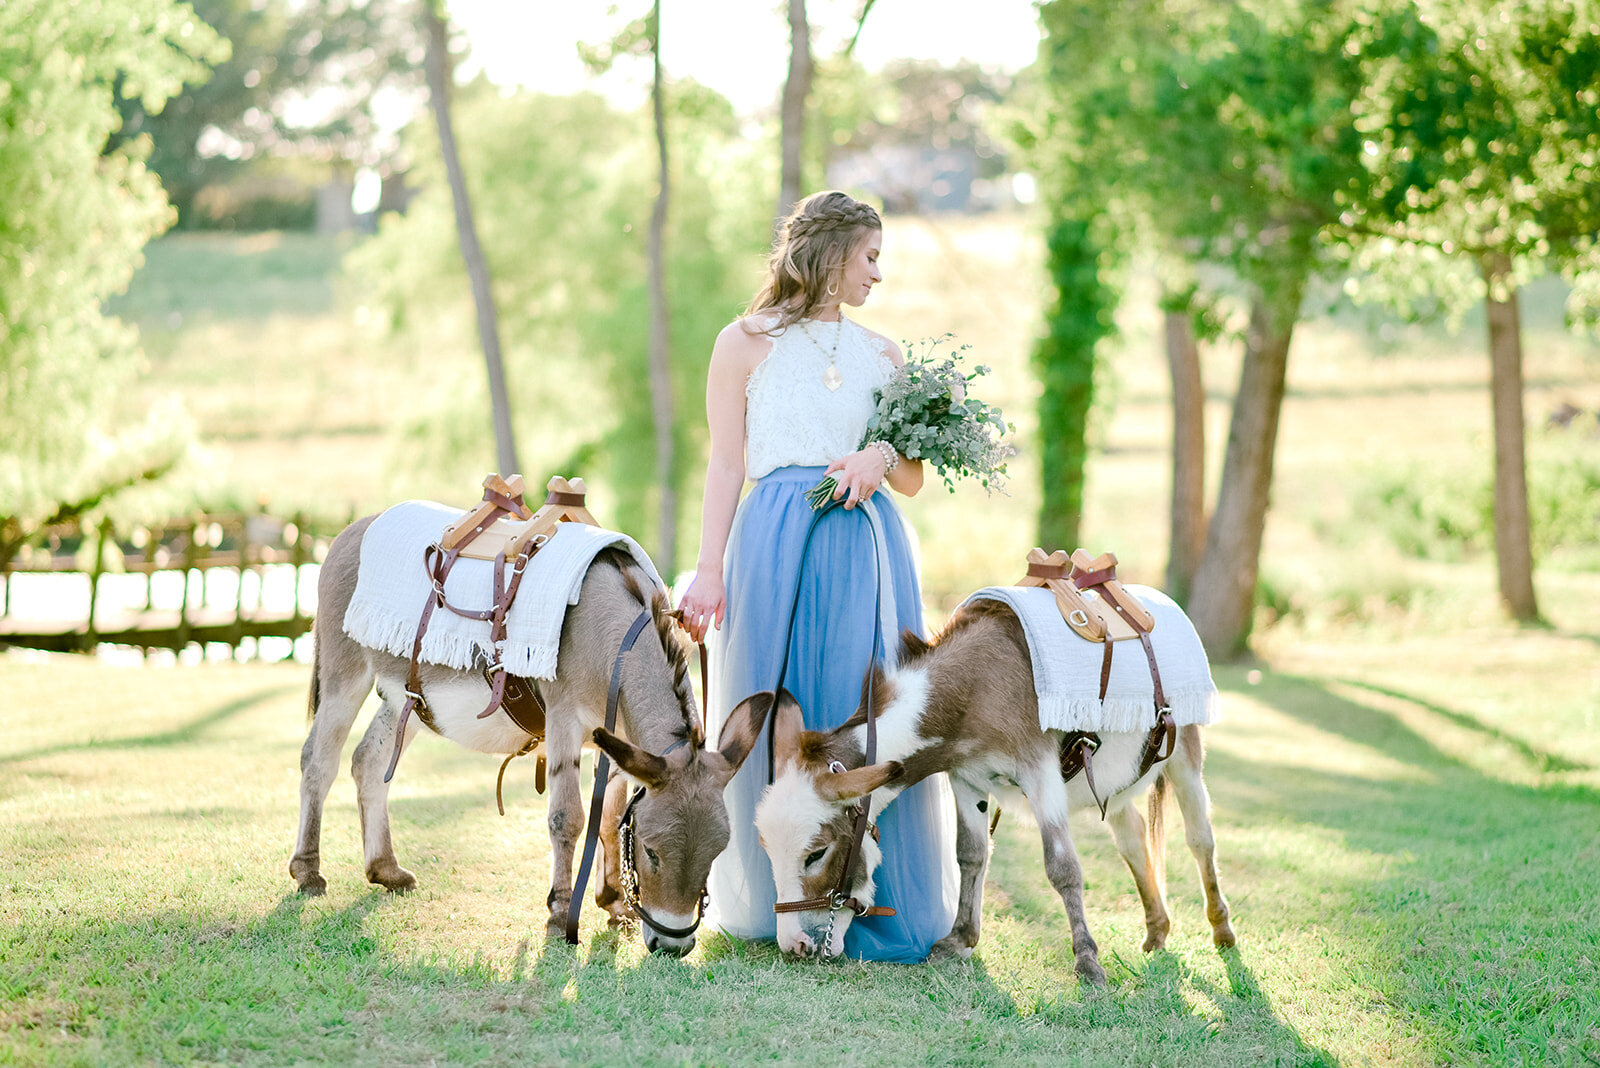 DFW unique wedding ideas